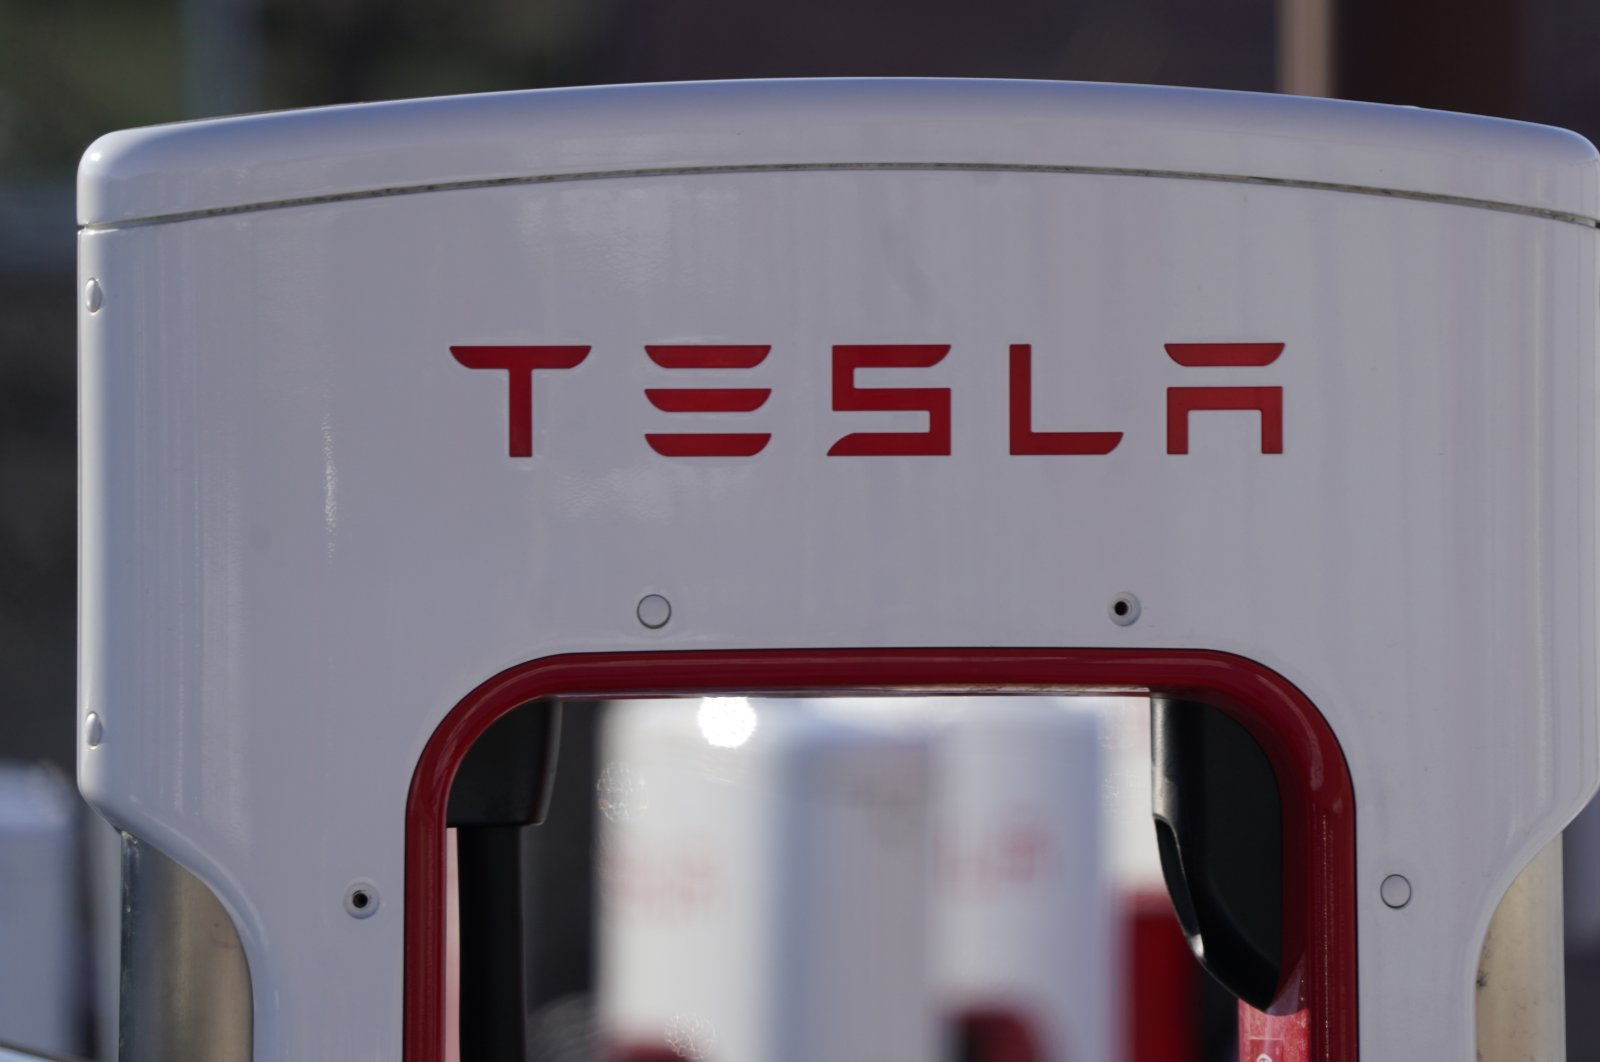 The company logo is shown at the top of a supercharger for Tesla automobiles near shops Feb. 25, 2021 in Boulder, Colo. (AP Photo)